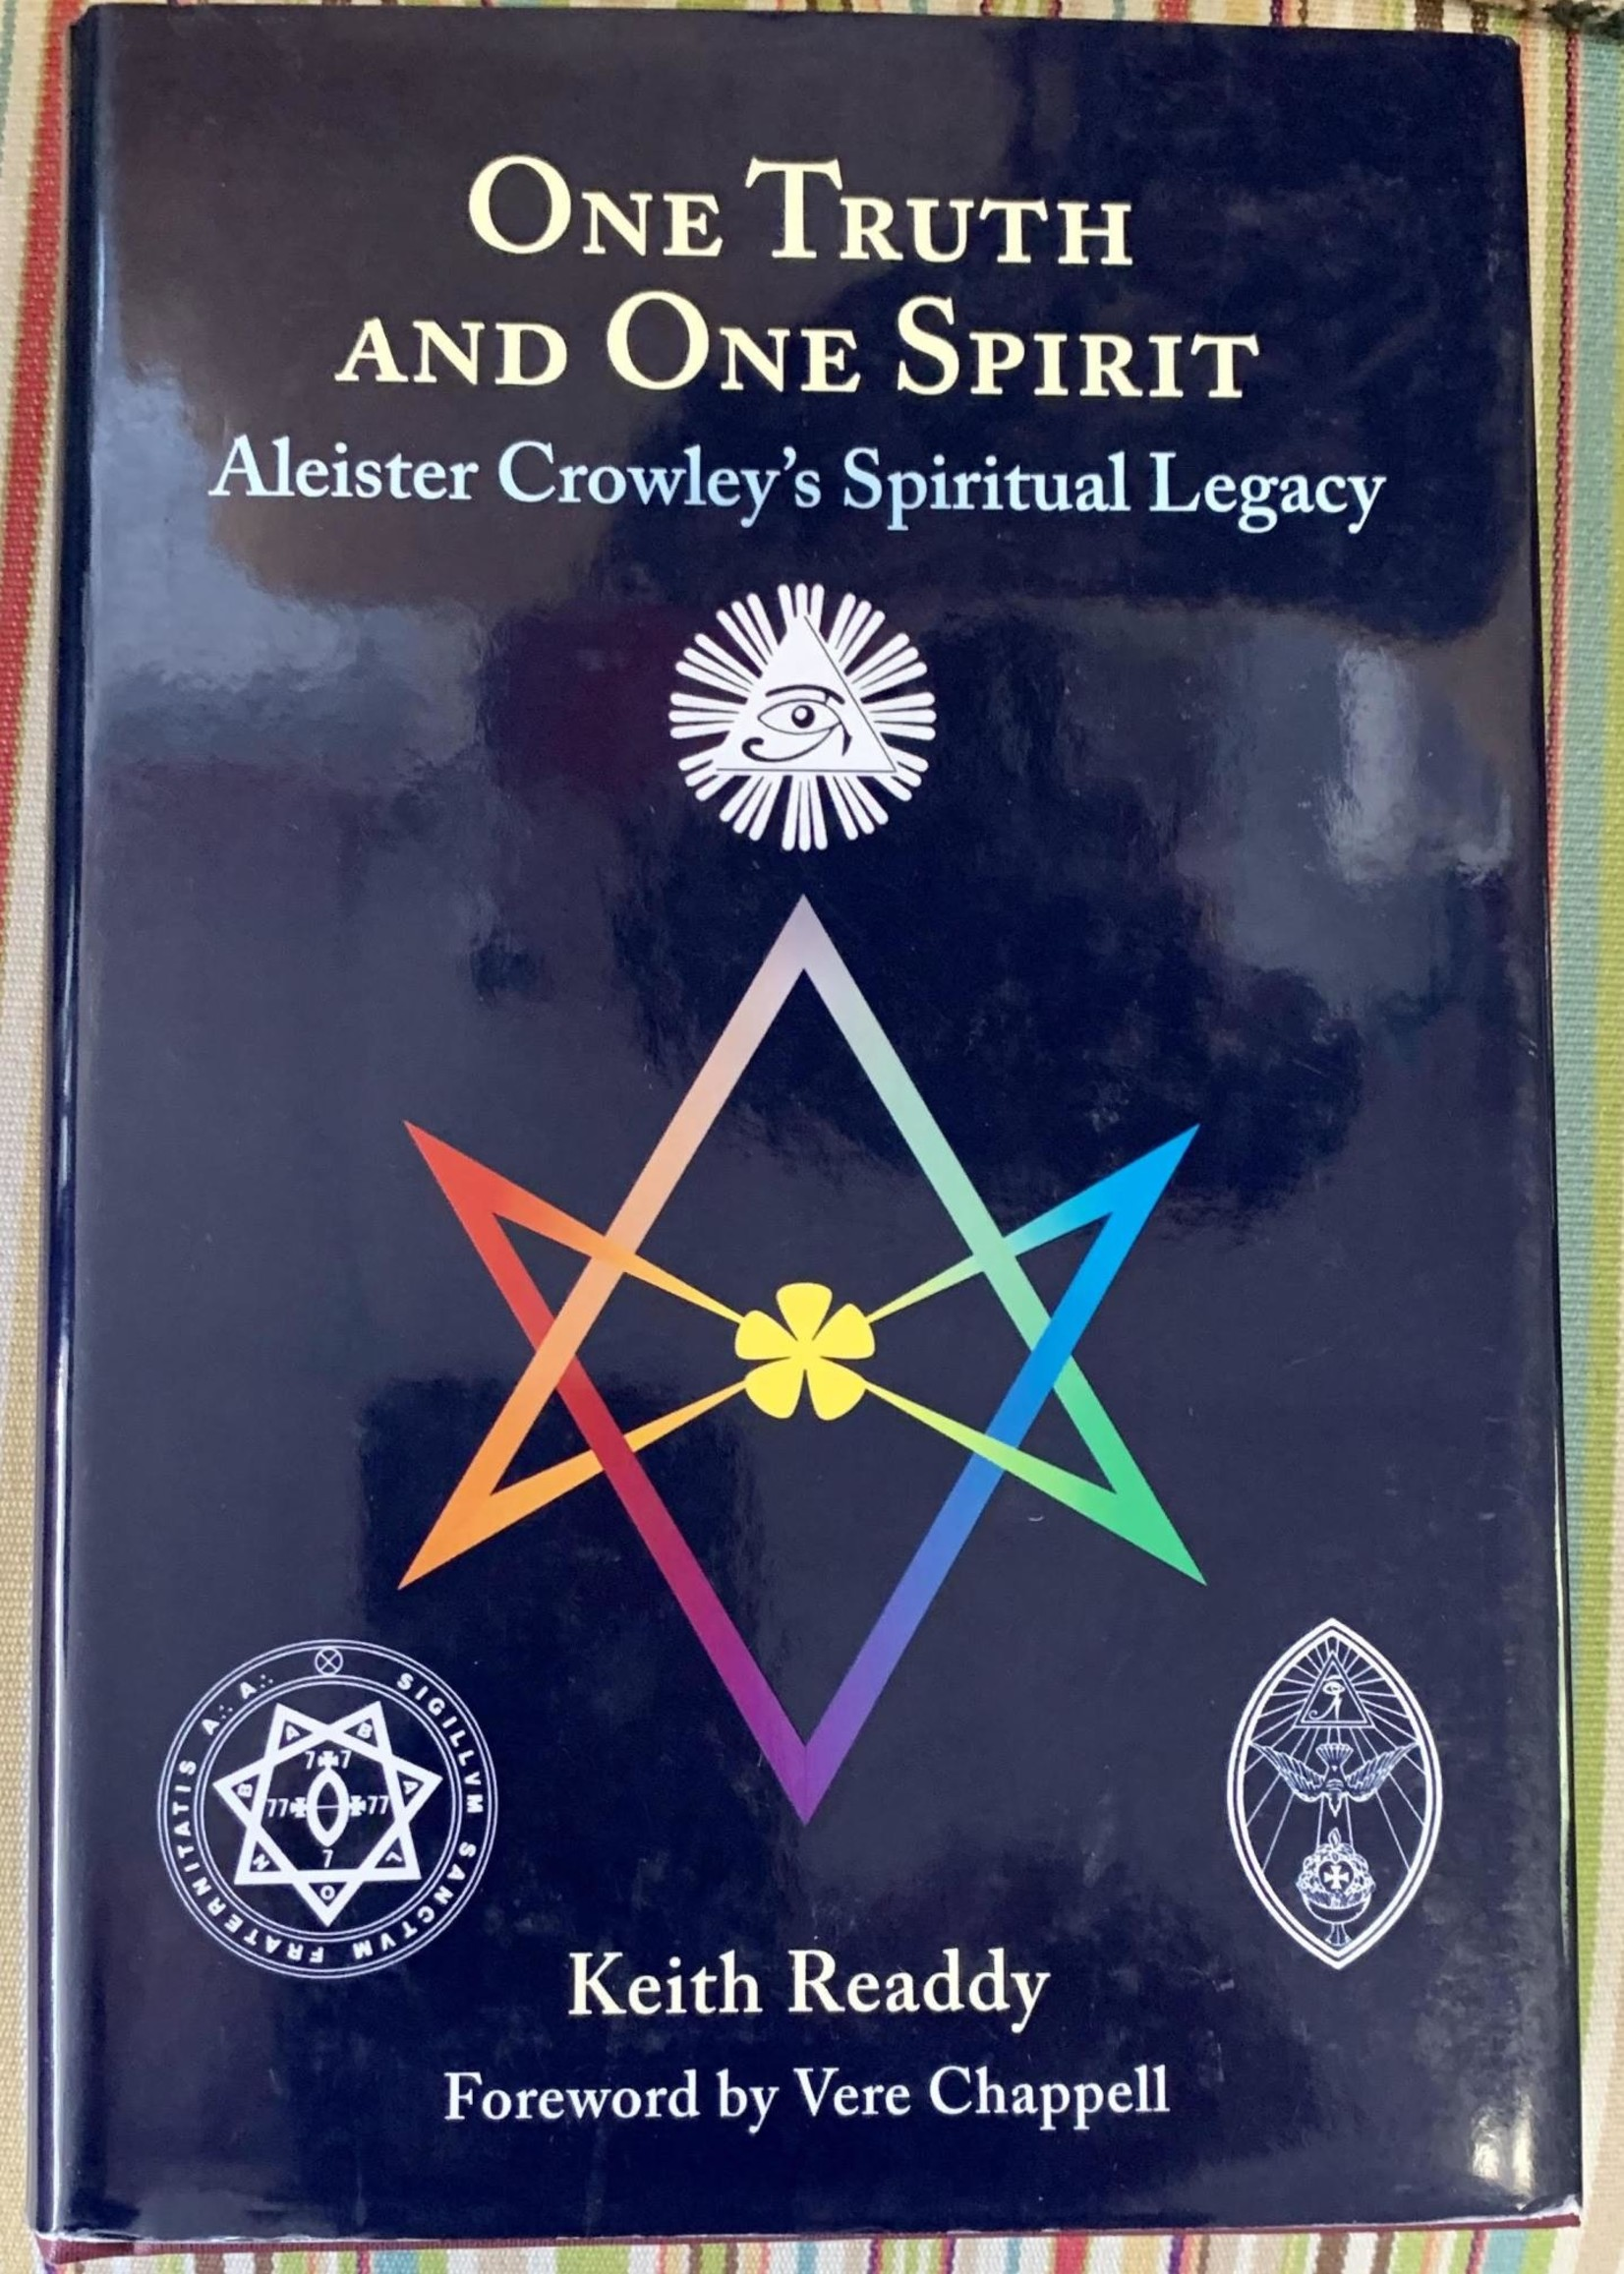 One Truth and One Spirit Aleister Crowley's Spiritual Legacy - Keith Readdy